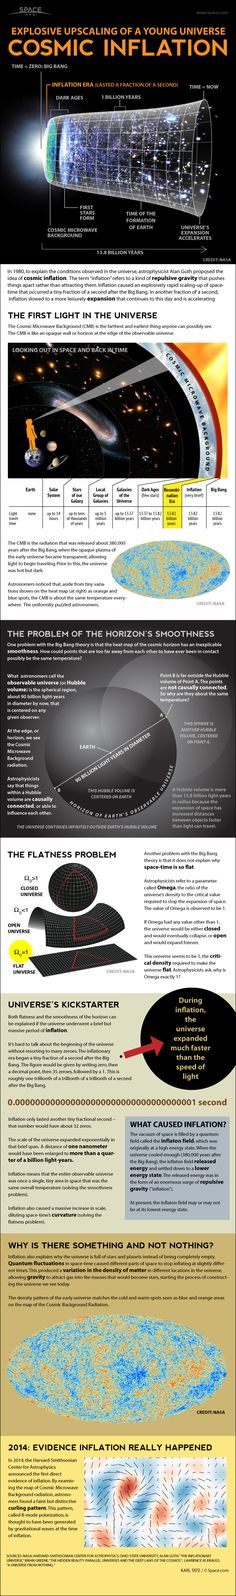 Inflation is the mysterious force that blew up the scale of the infant universe from sub-microscopic to gargantuan in a fraction of a second. See how cosmic inflation theory for the Big Bang and universe's expansion works in this Space.com infographic. Credit: By Karl Tate, Infographics Artist